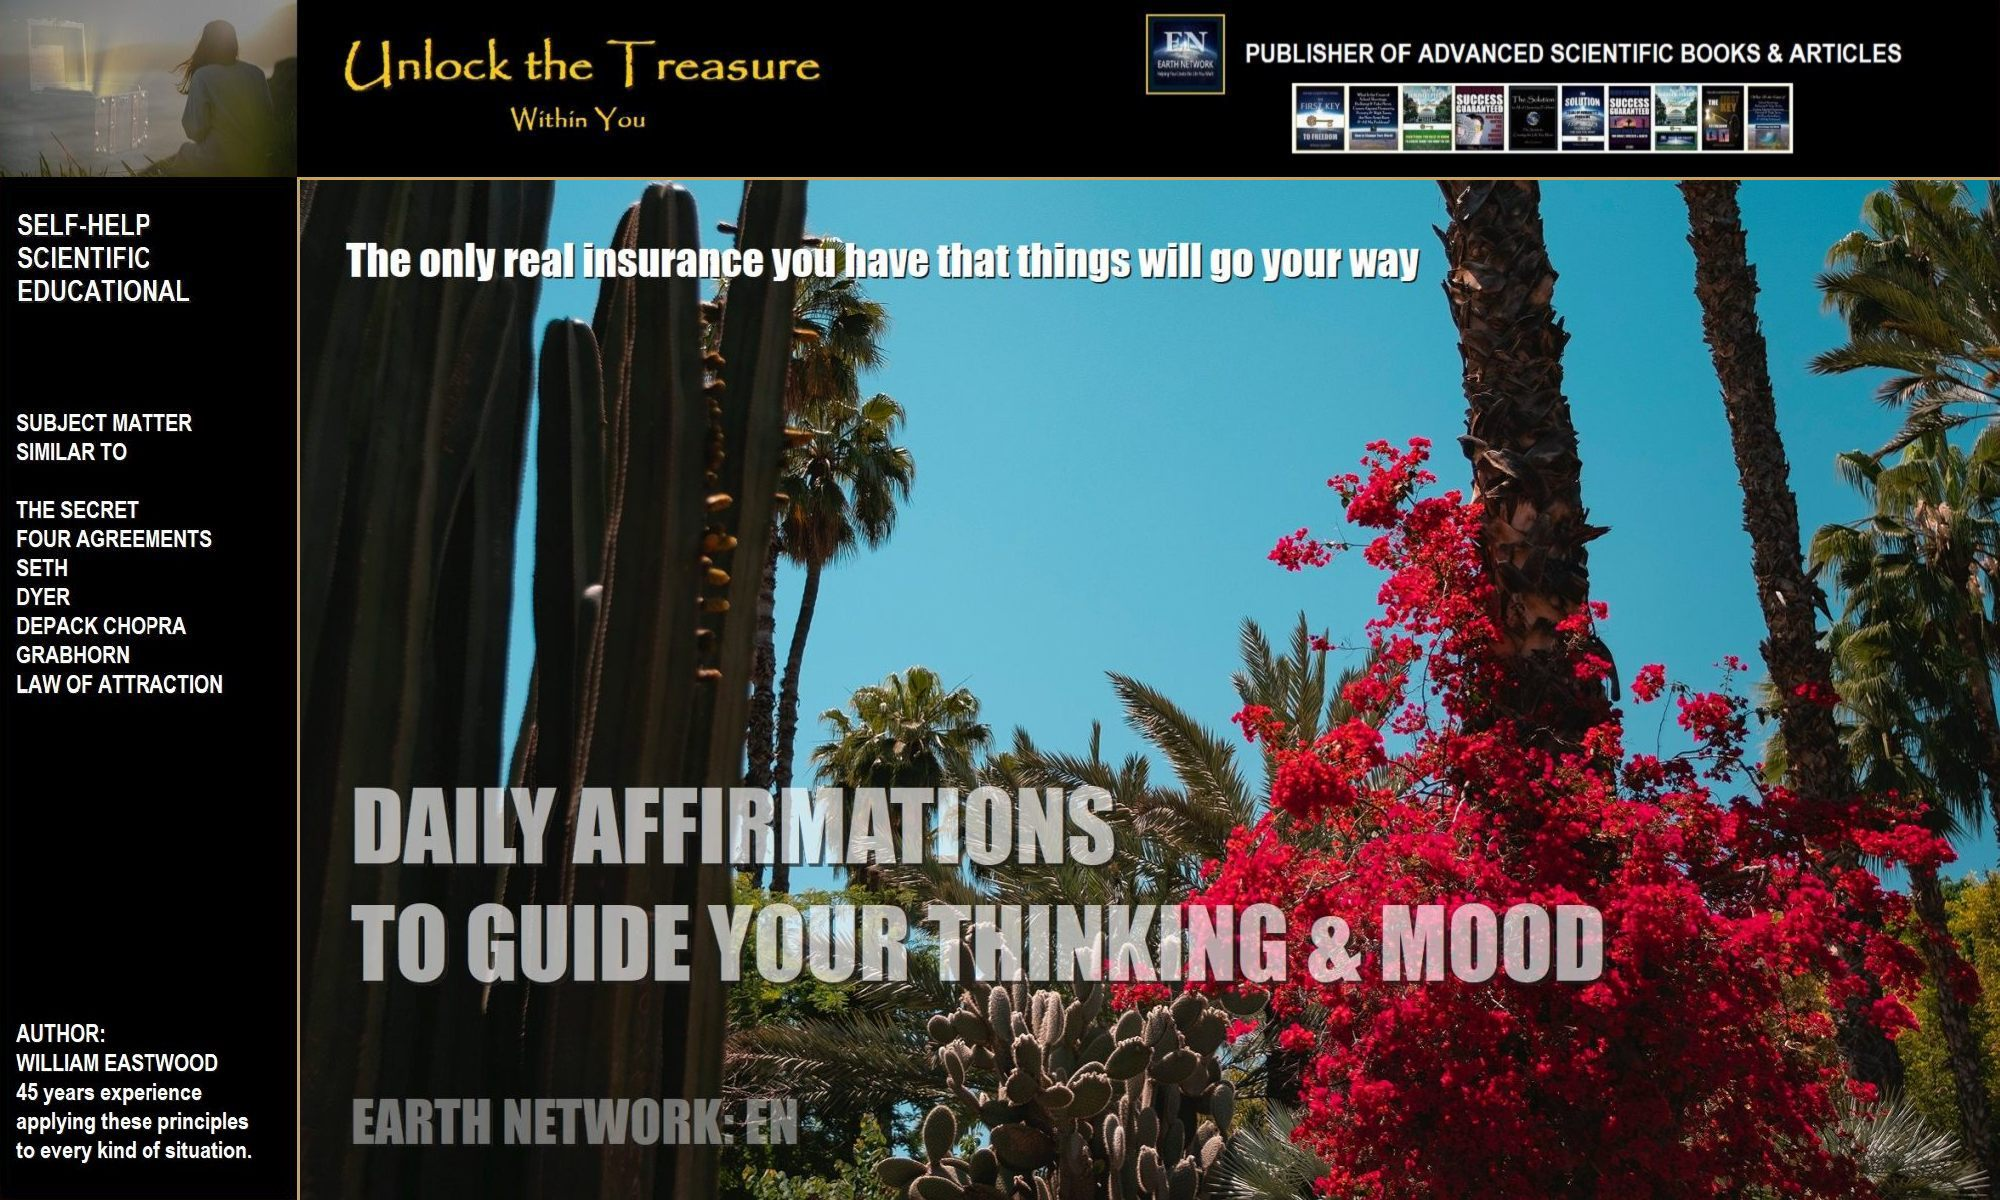 Gorgeous flowers in desert accentuate the positive affirmations given here